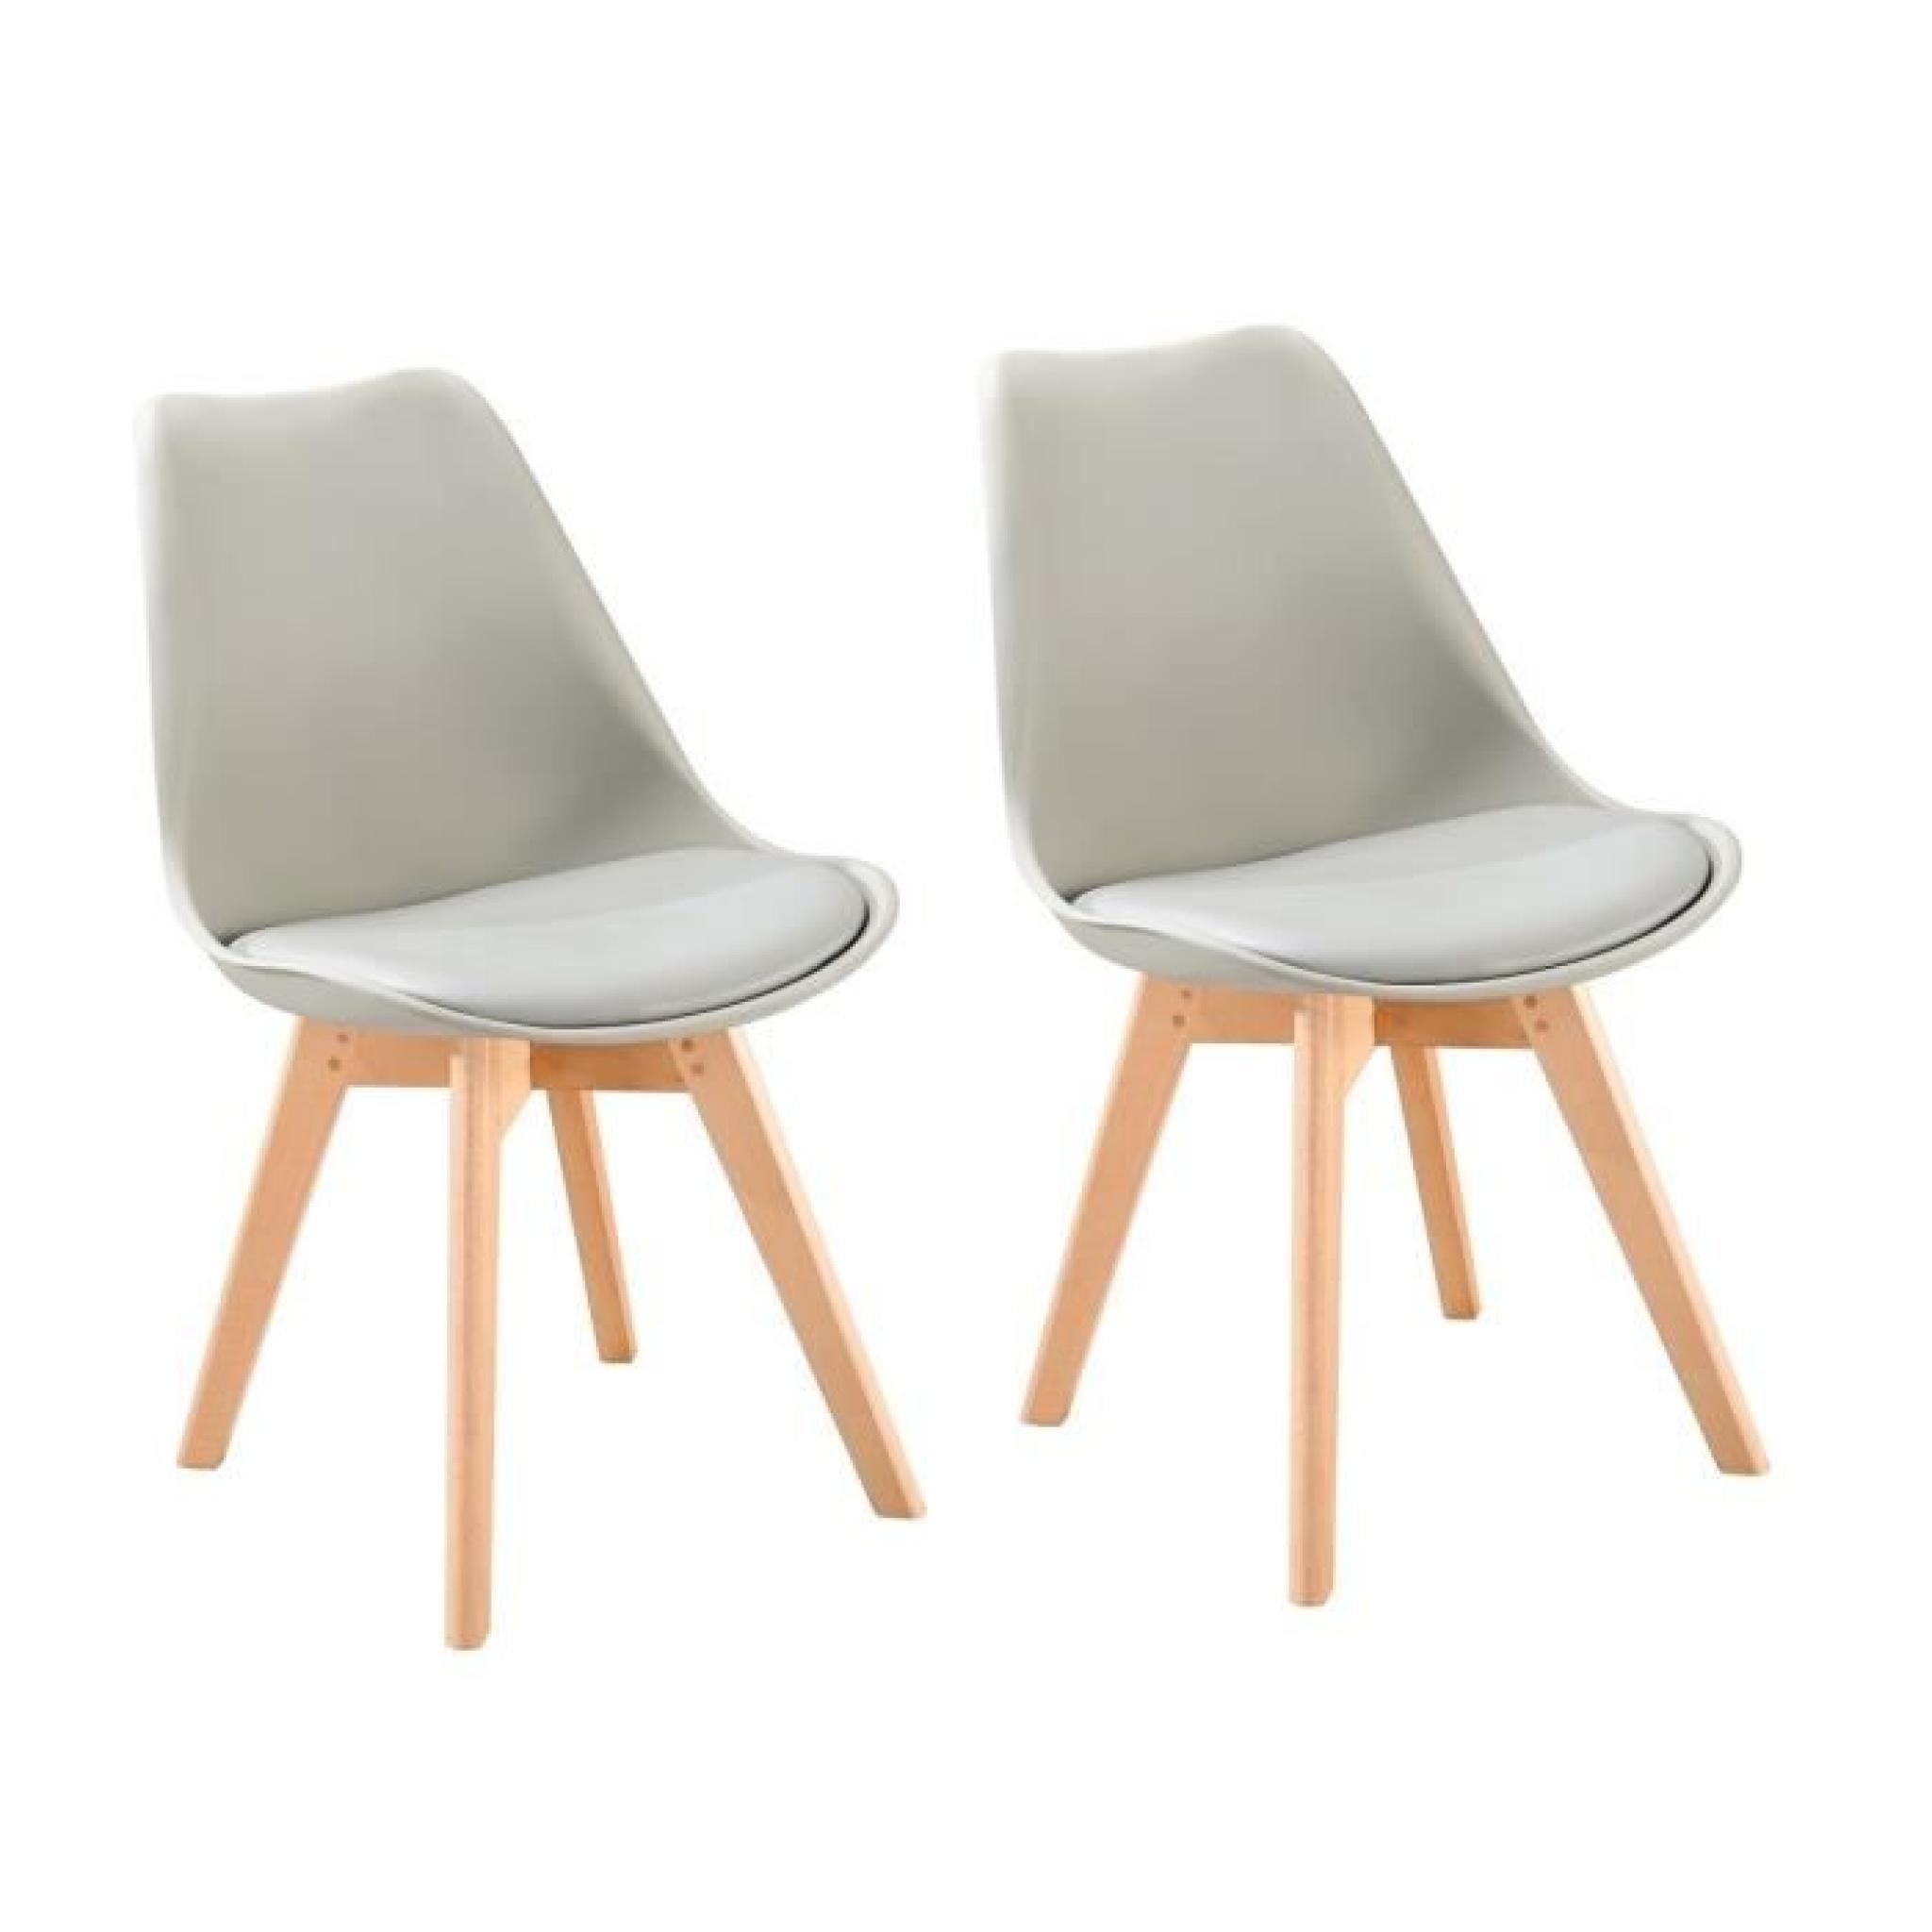 Bjorn lot de 2 chaises scandinaves de salle manger for Chaises de table a manger